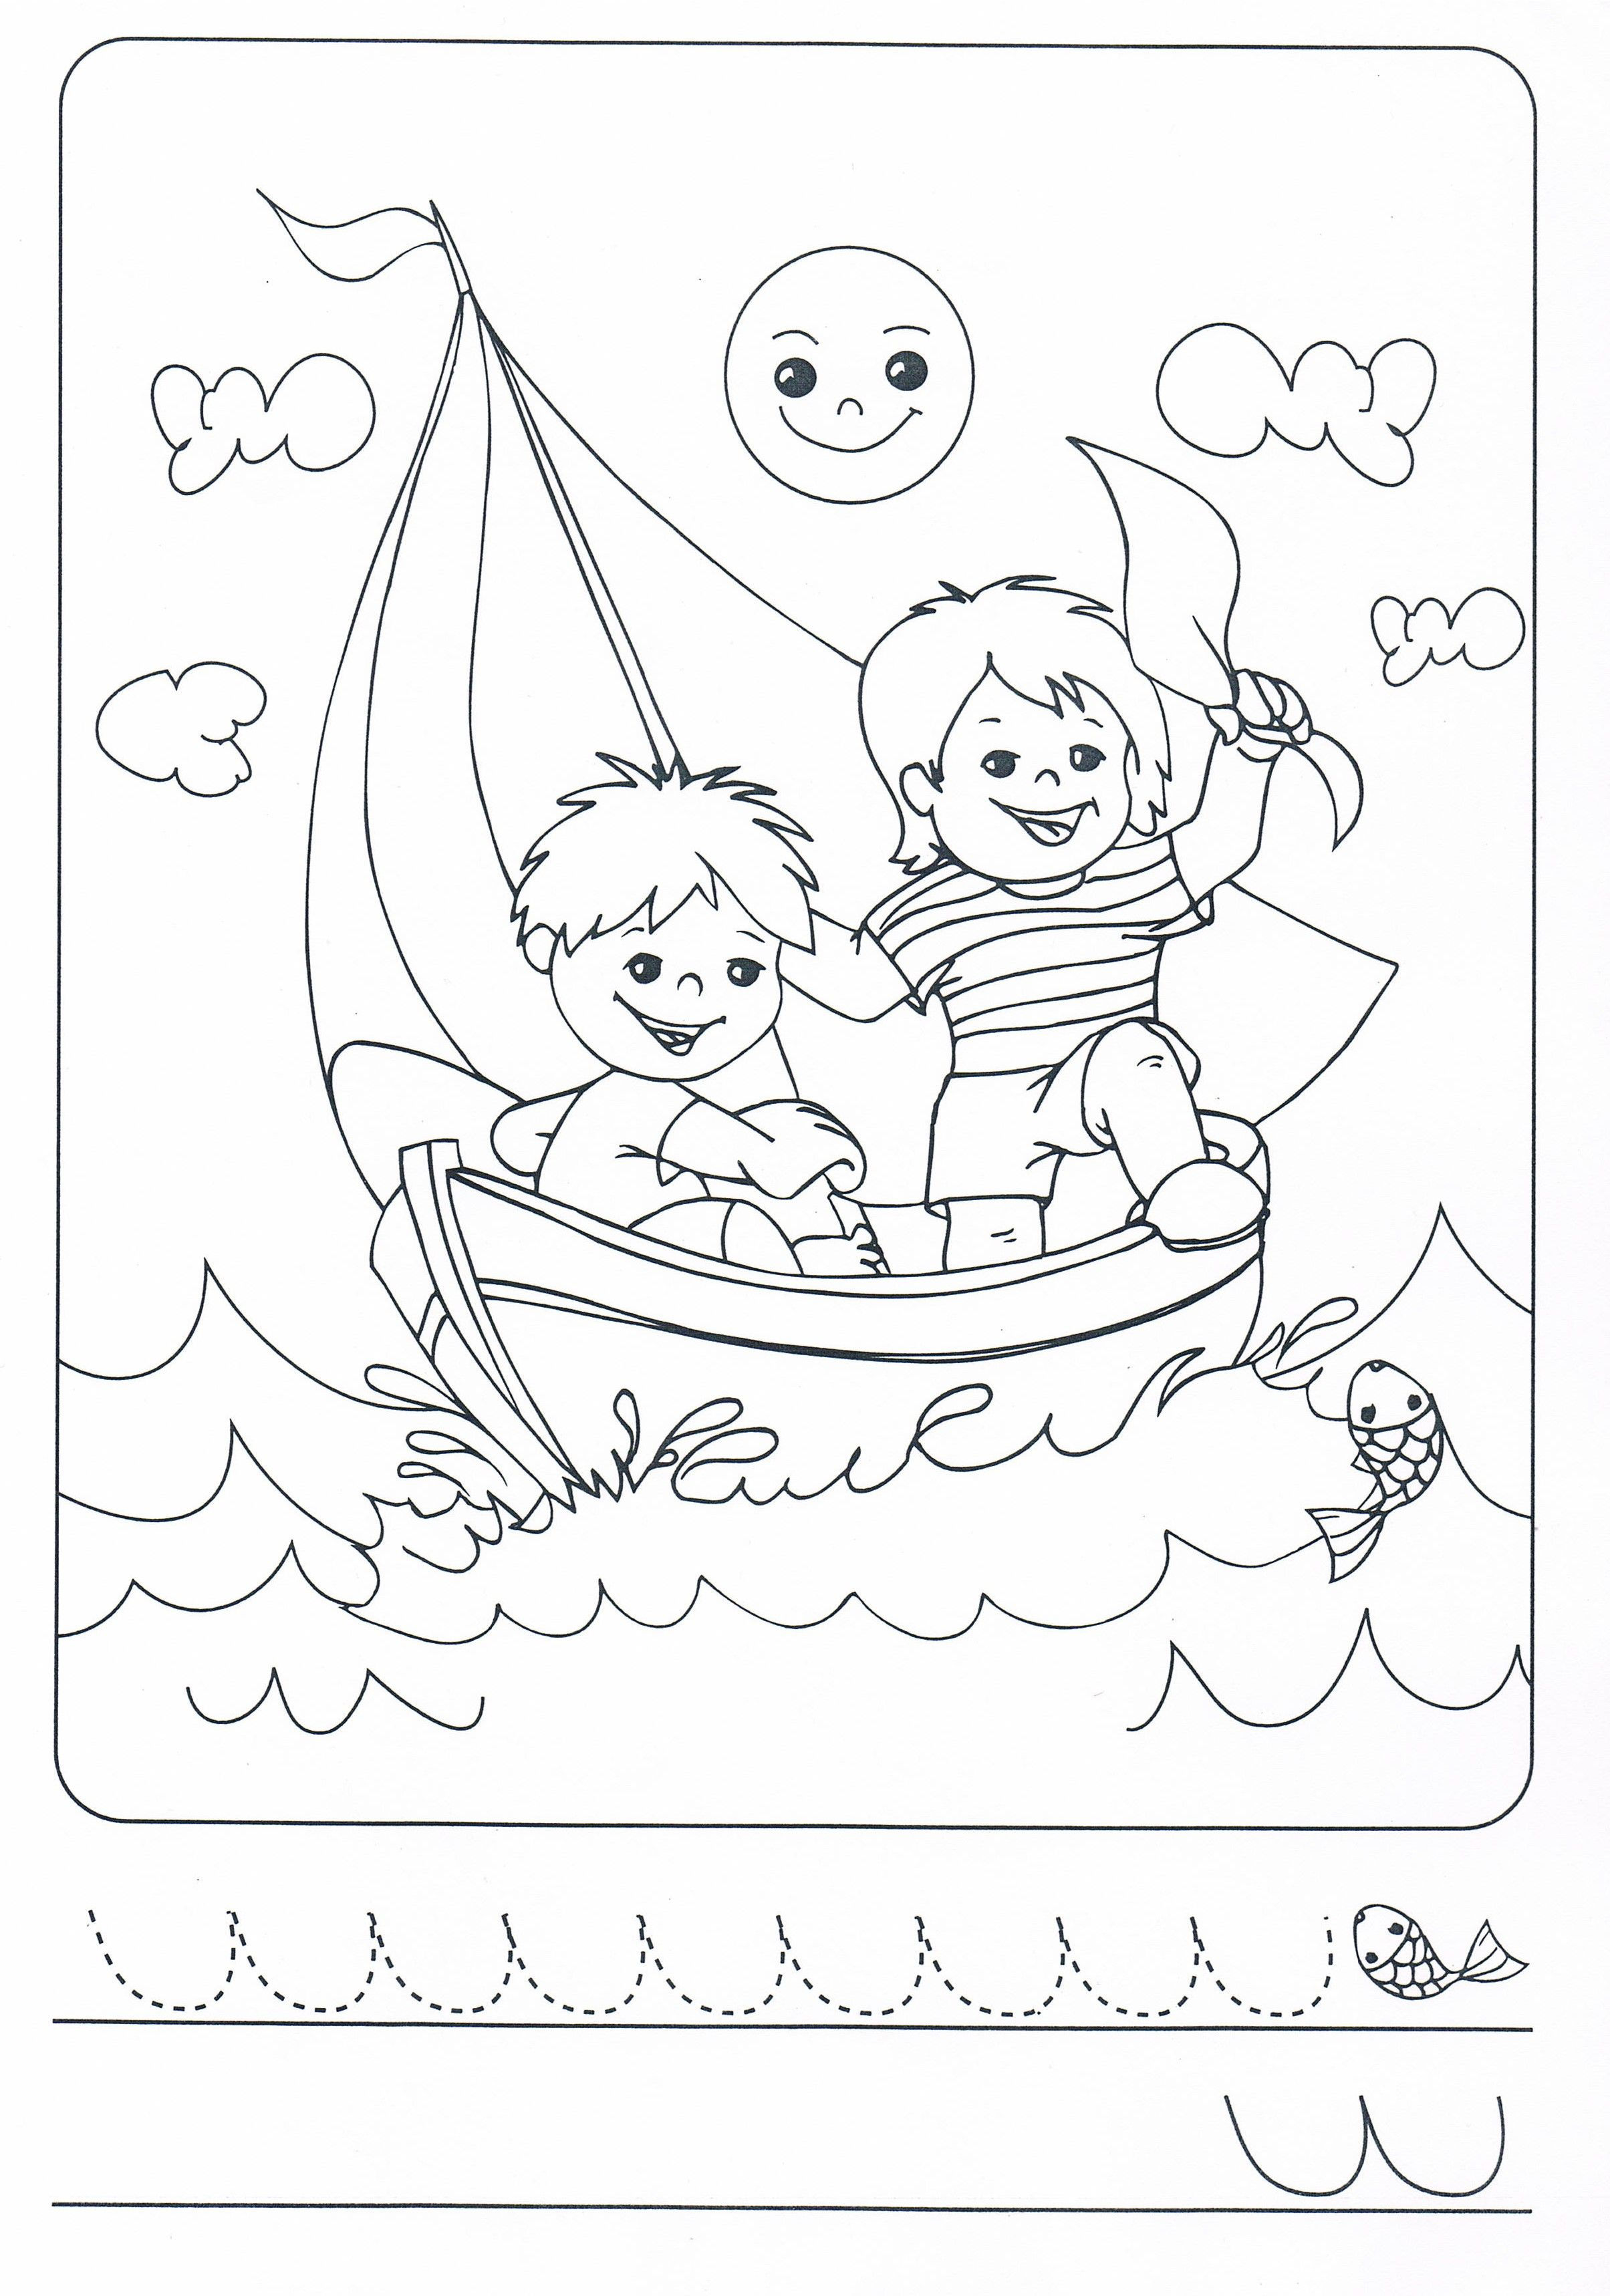 Pin By Veronika Pap On Grafomotorika Coloring Books Colouring Pages Coloring Pages